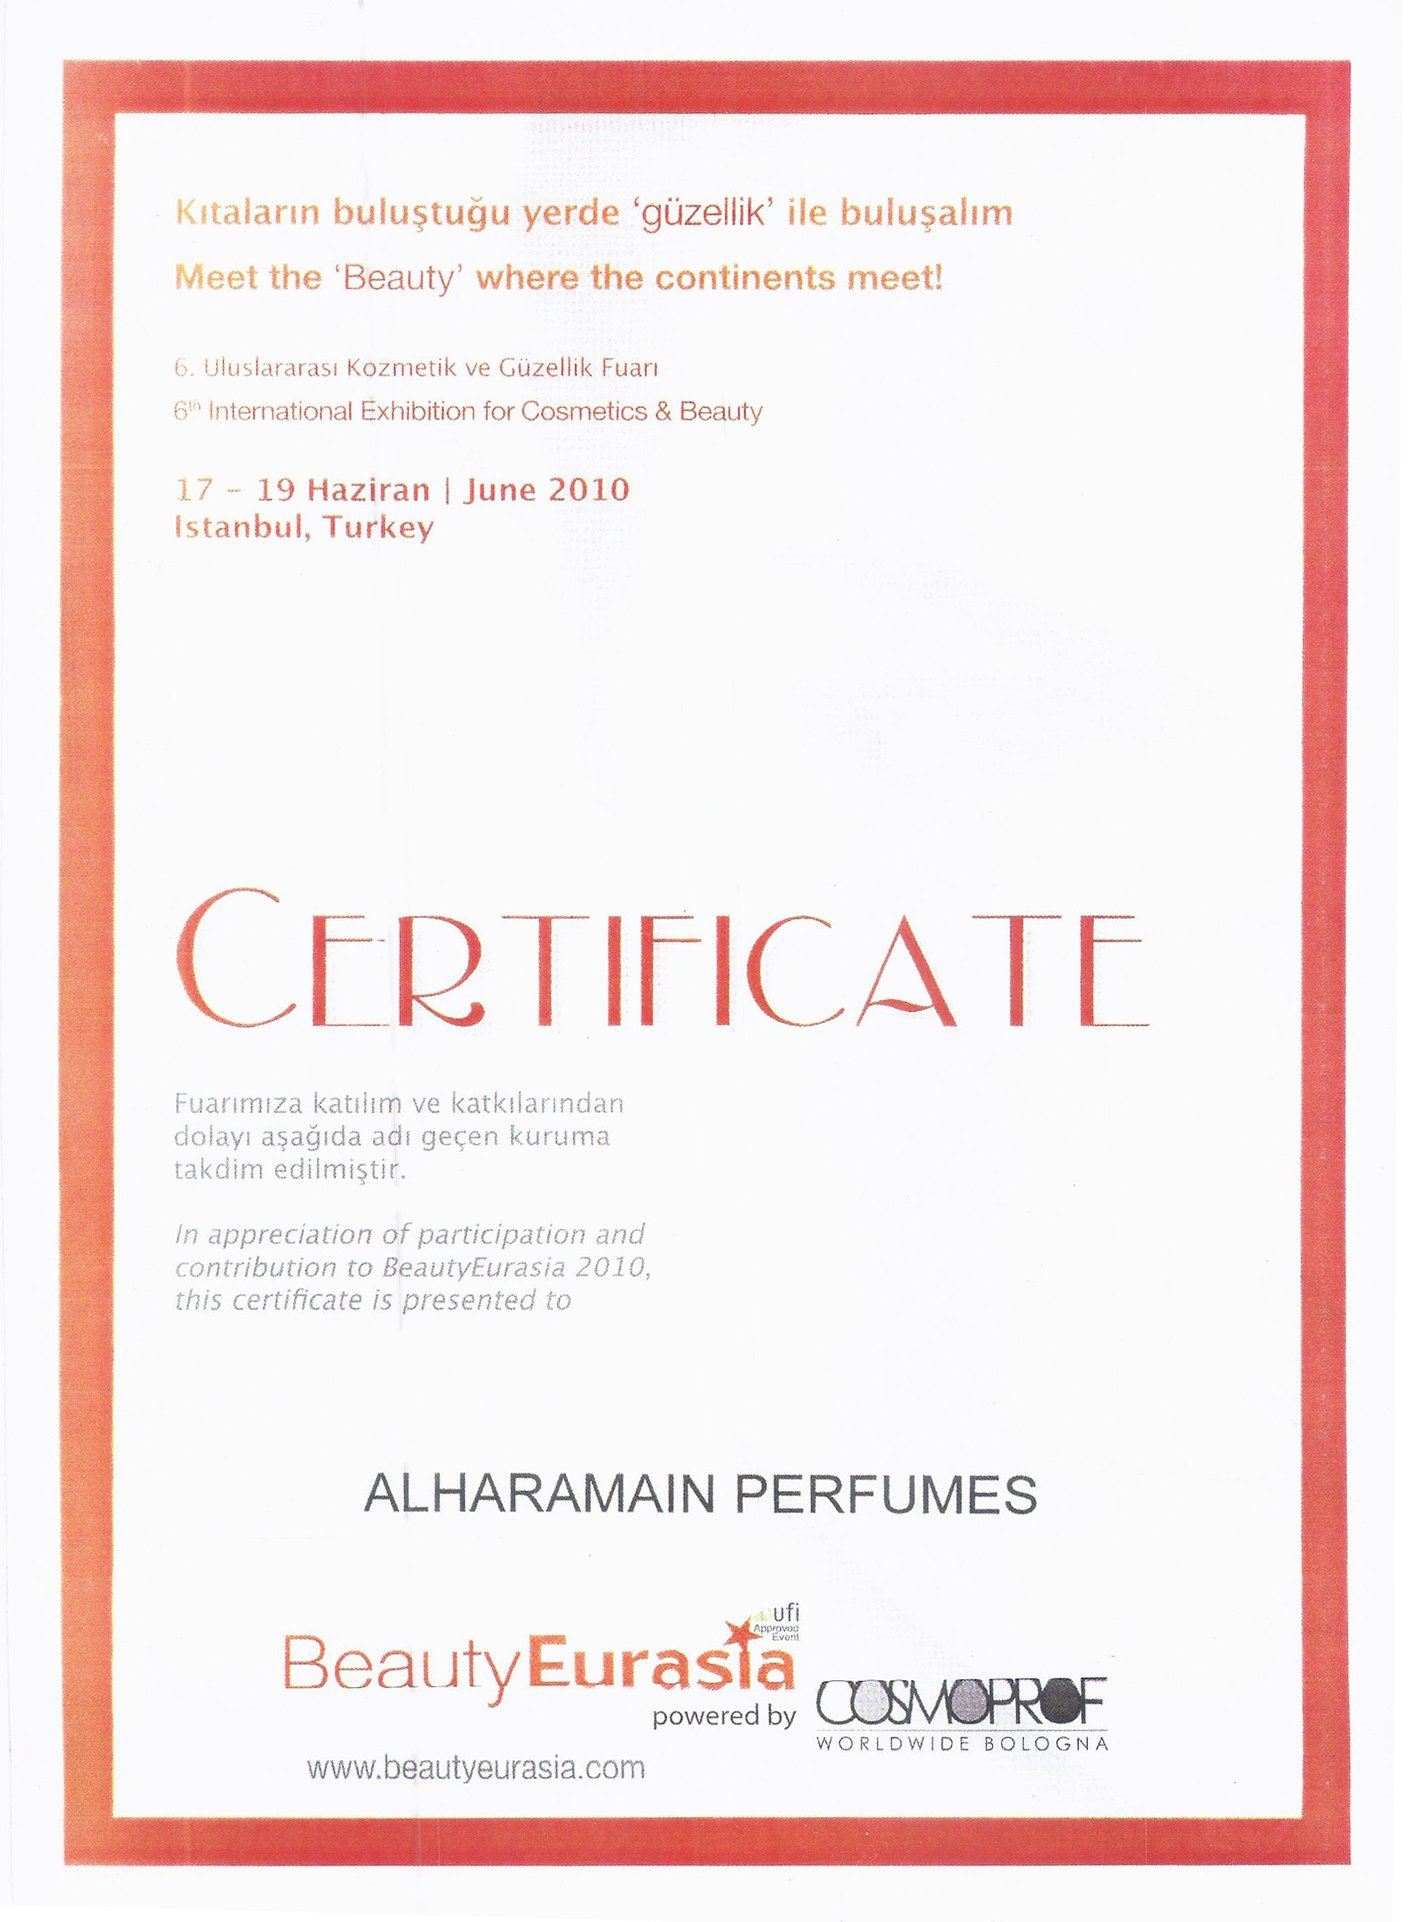 al haramain perfumes 2010 beauty eurasia certificate of participation & contribution